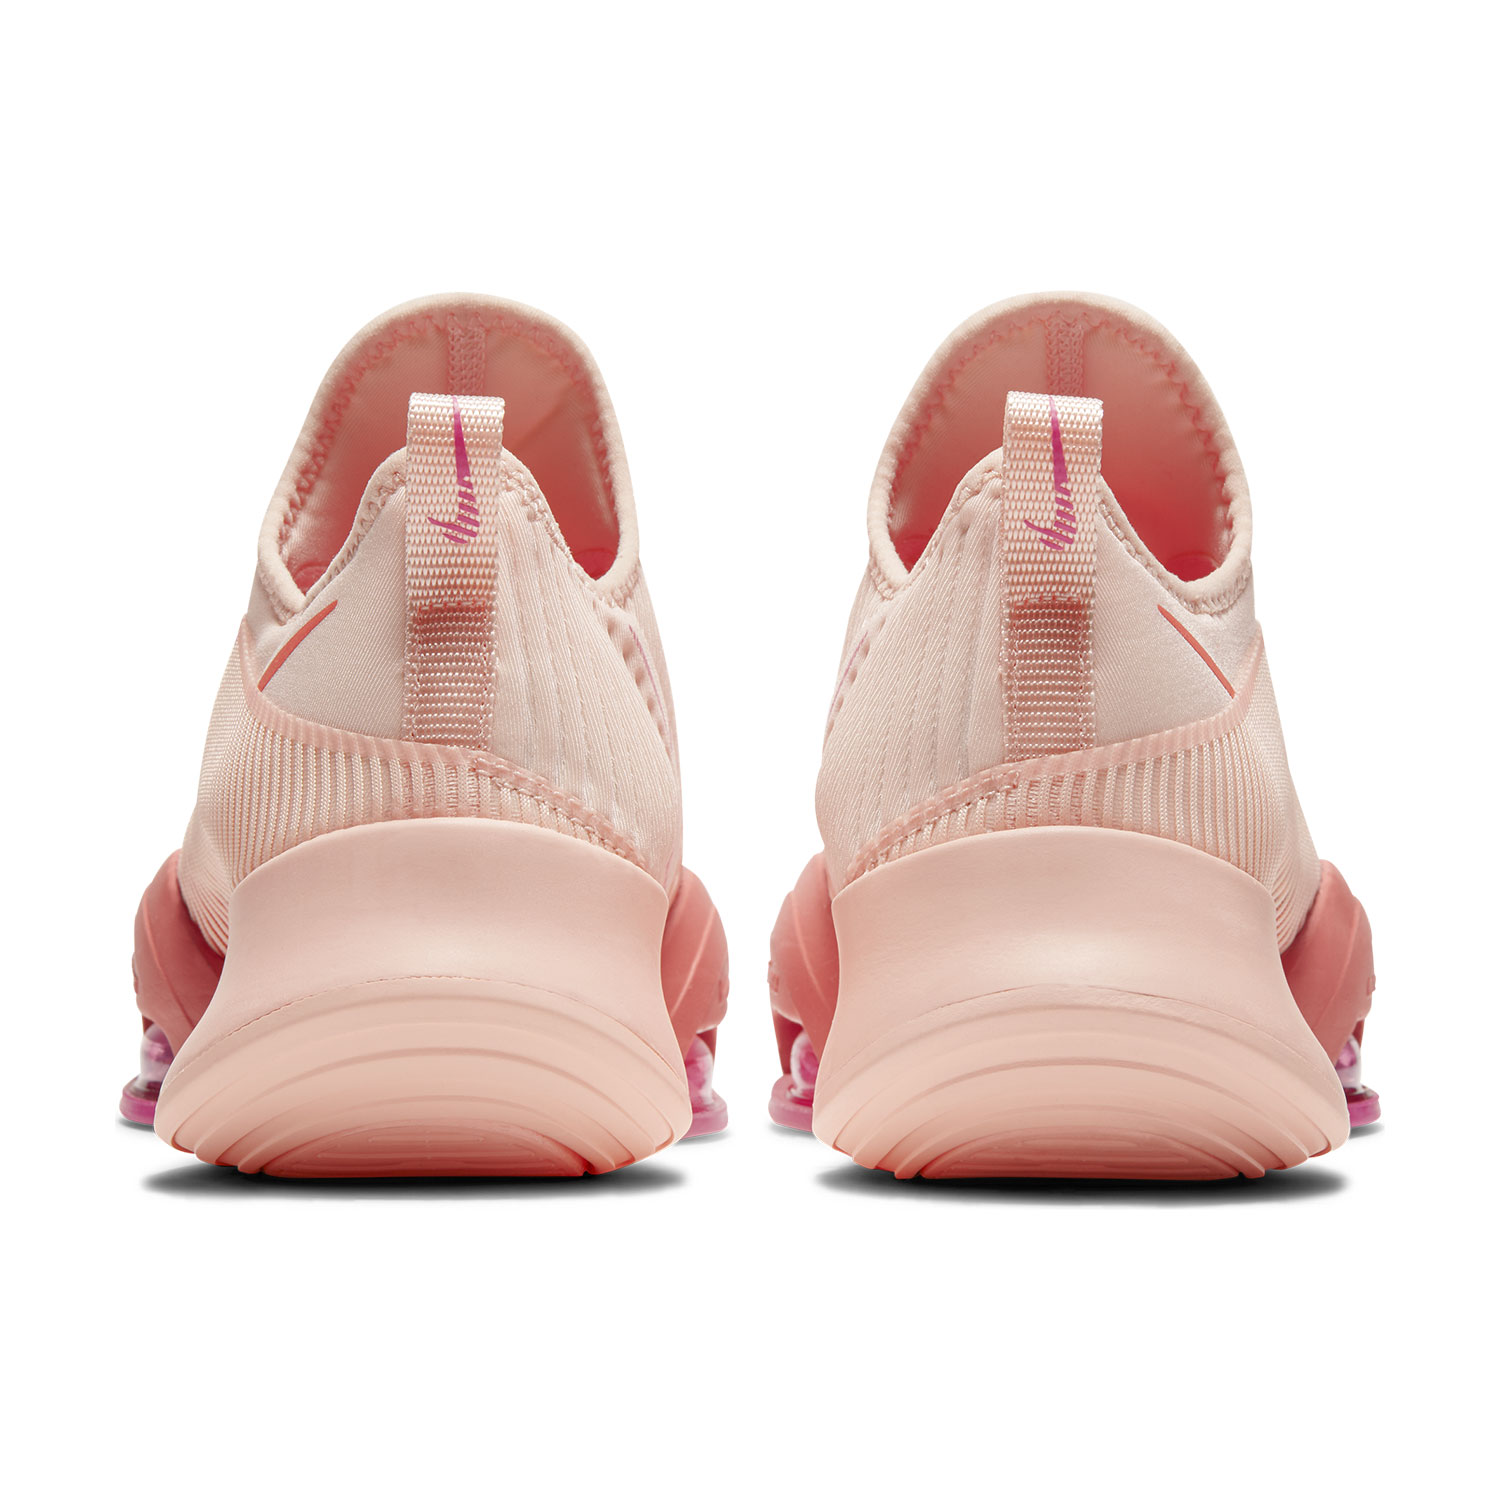 Nike Zoom SuperRep - Washed Coral/Fire Pink/Magic Ember